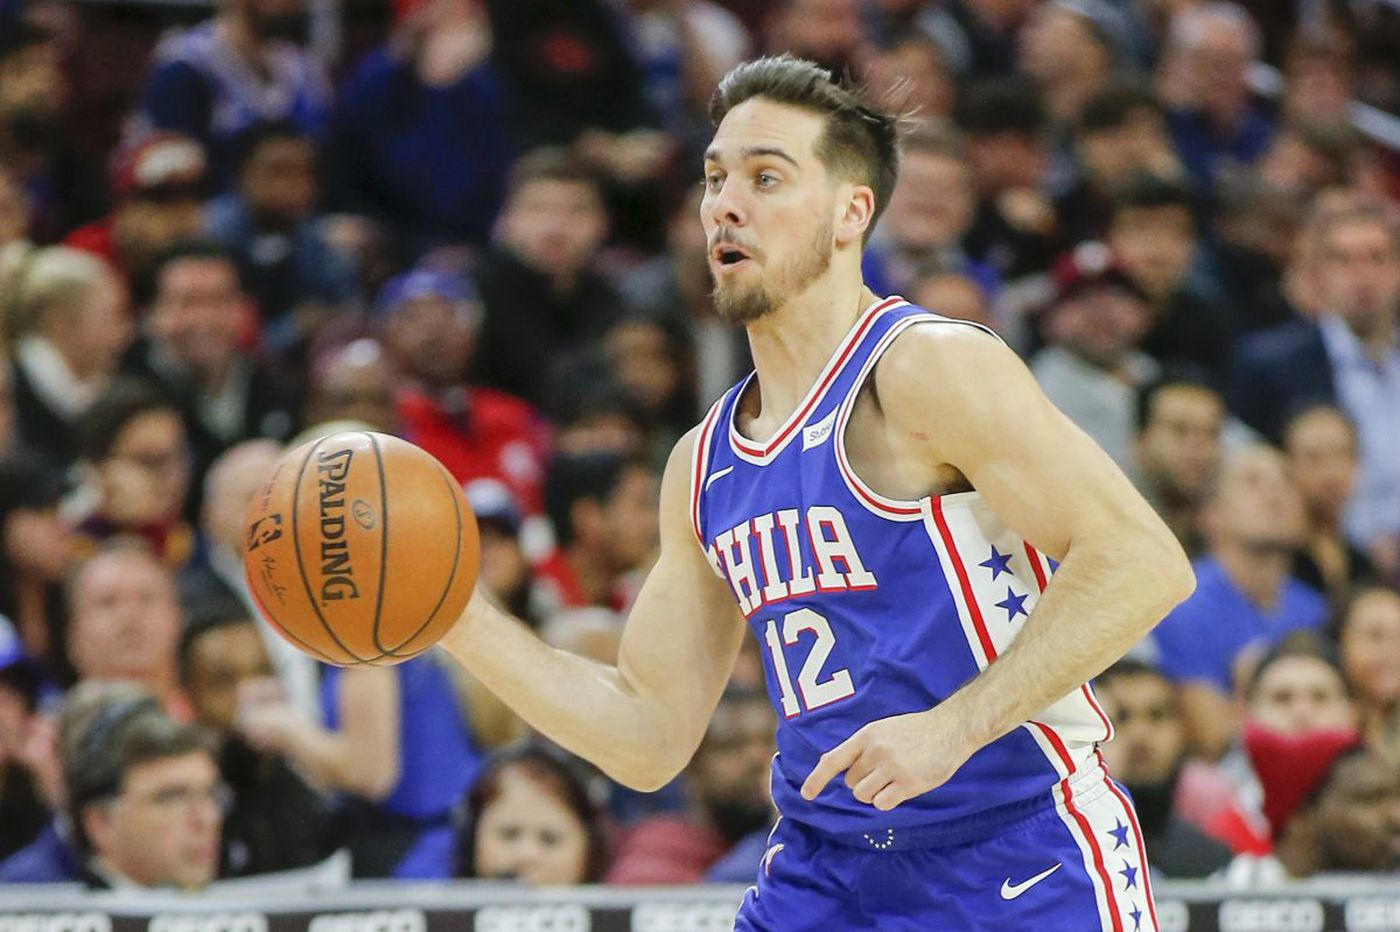 Sixers point guard T.J. McConnell's MRI result comes back negative